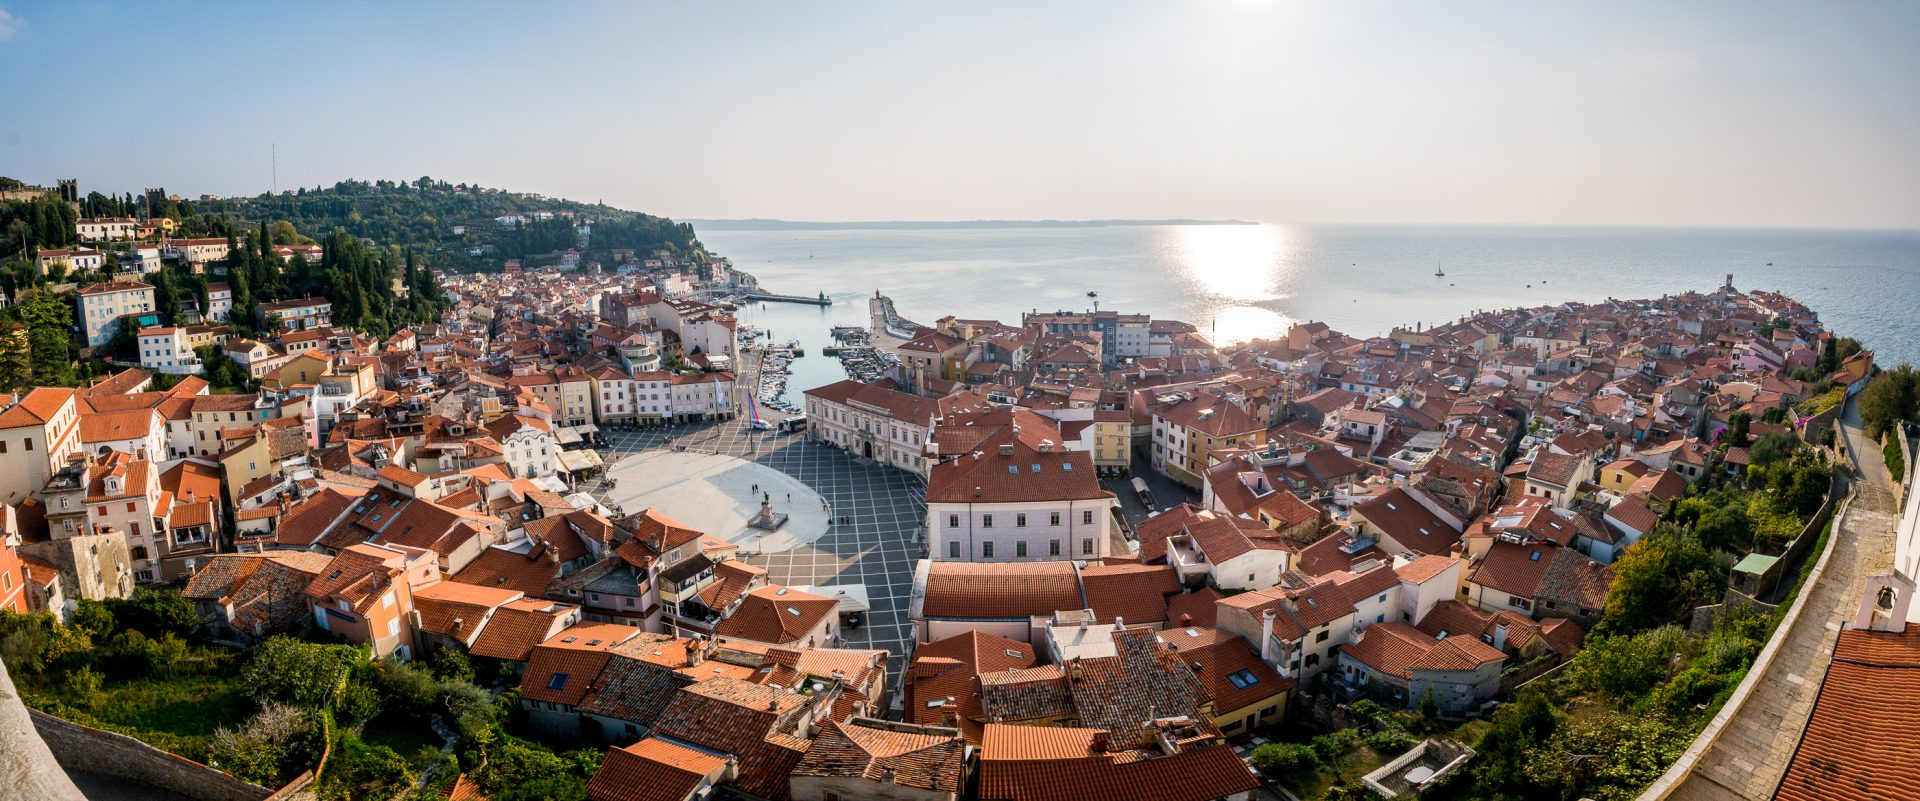 Piran from St. George belltower